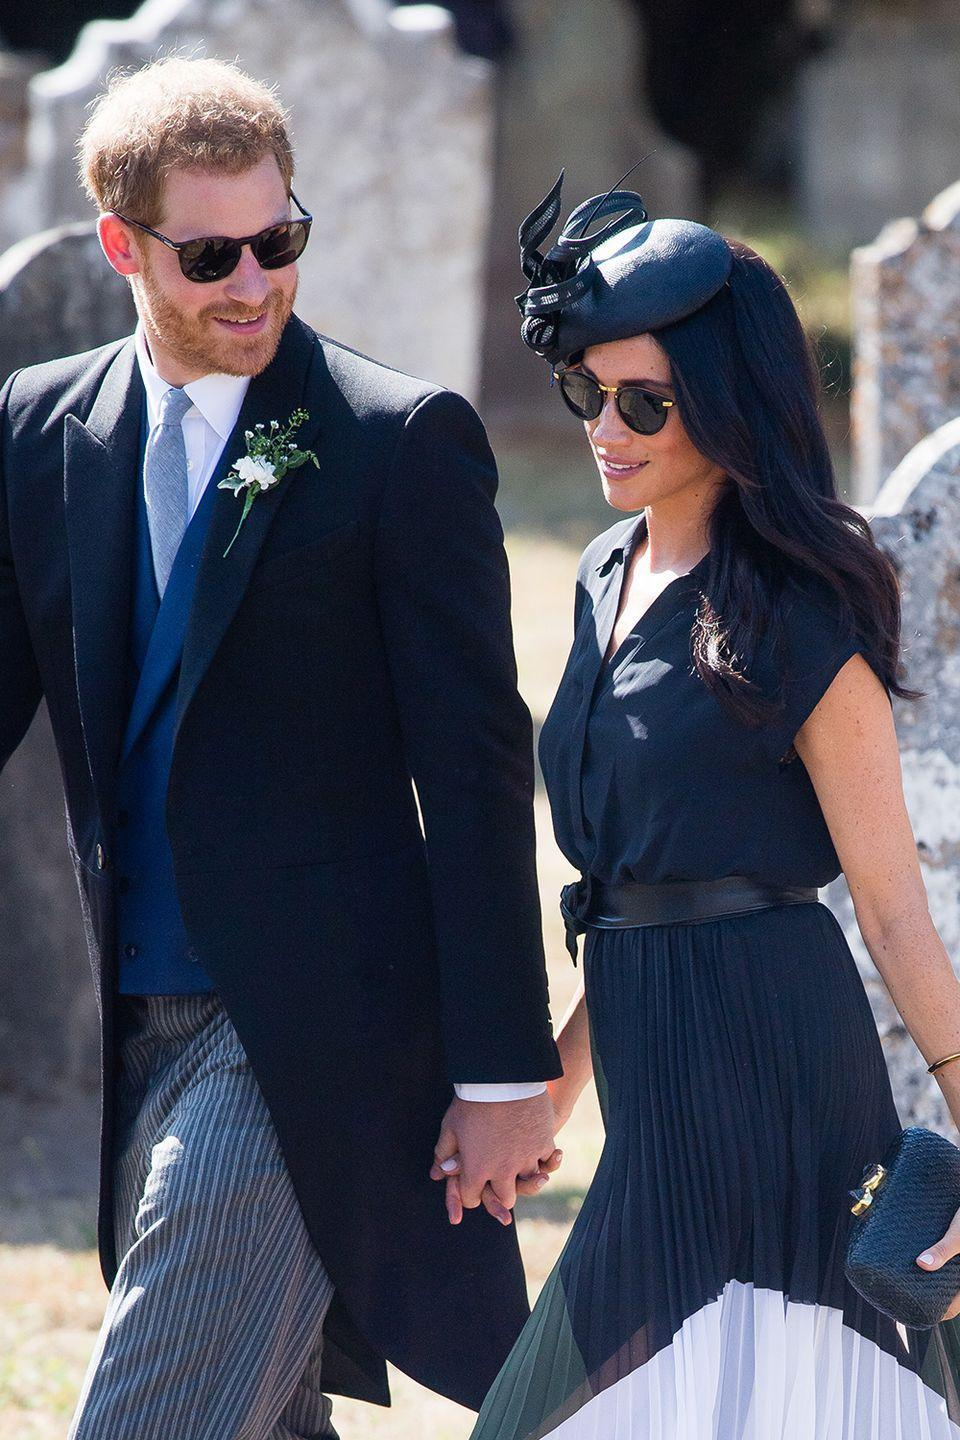 <p>Back we go to the very beginning of Meghan and Harry's first pregnancy... On Meghan's 37th birthday in early August, she and Harry attended the wedding of Charlie van Straubenzee and Daisy Jenks. Now we know when Archie was born - 8 May, 2019 - we can track back to the very early days of Meghan Markle's first pregnancy, which is around about this time. Being in the very first days of pregnancy, Meghan wasn't showing at all here.</p>